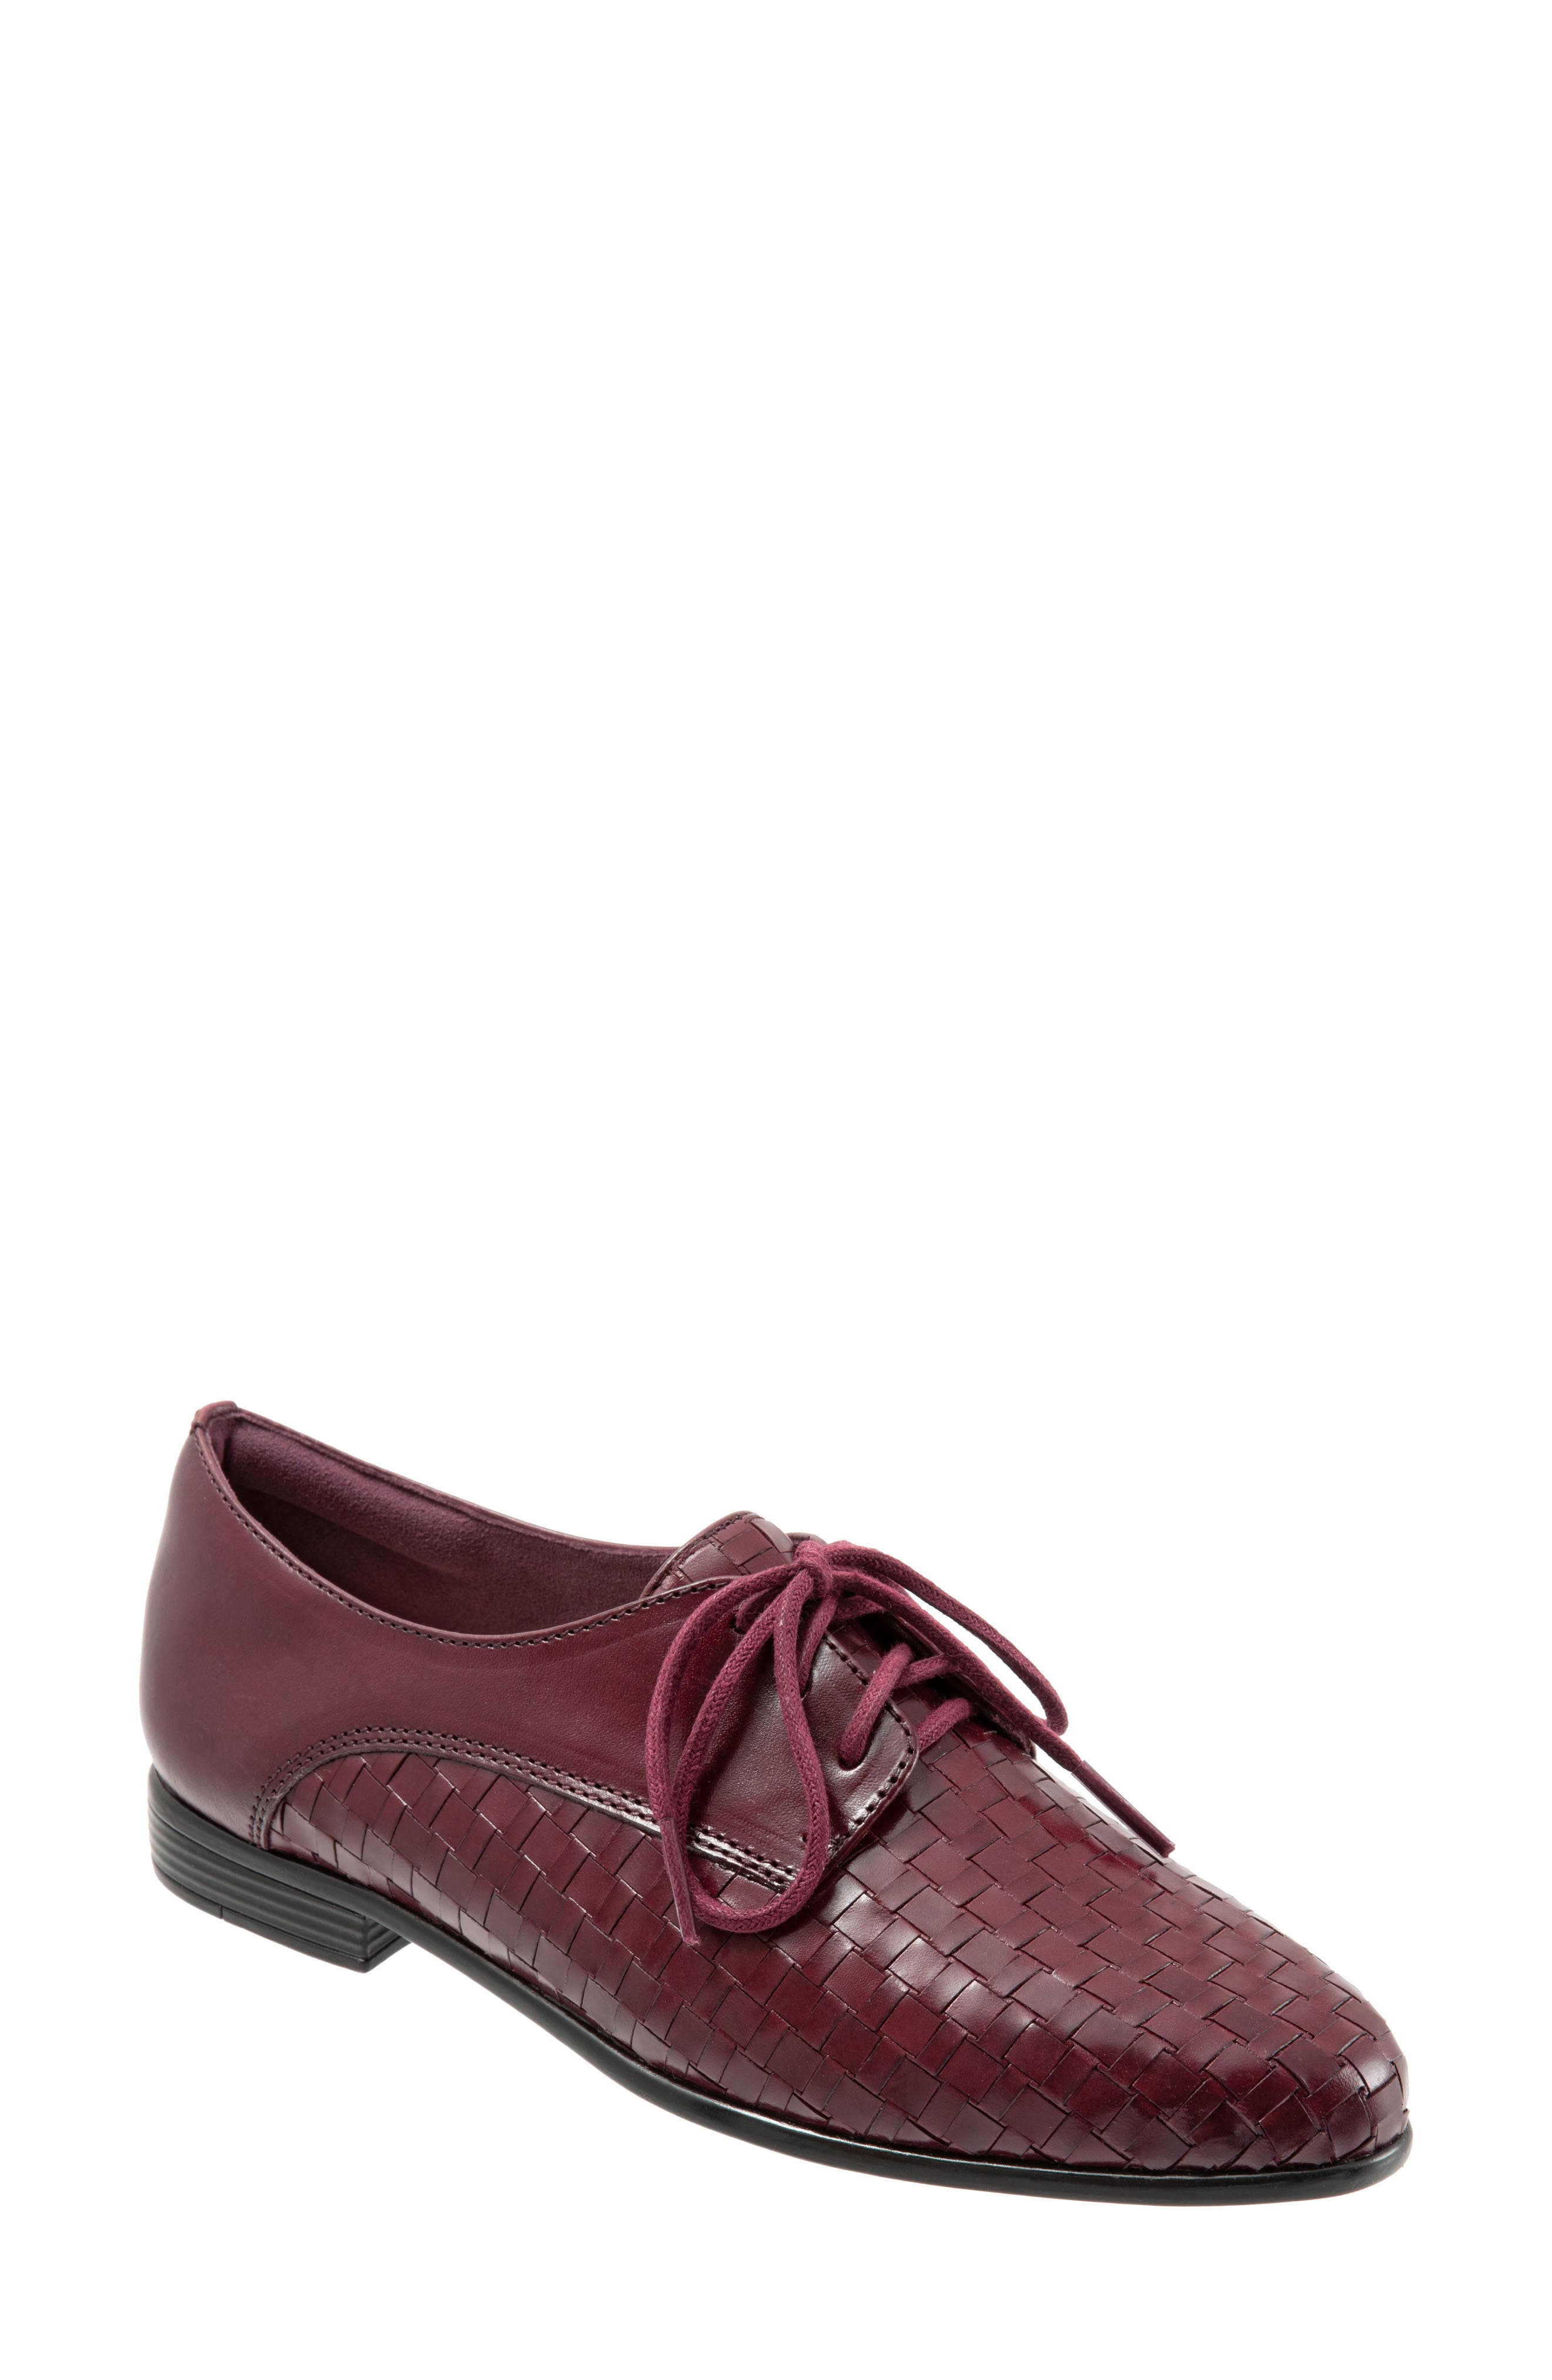 Lizzie Derby Flat,                         Main,                         color, BLACK CHERRY LEATHER